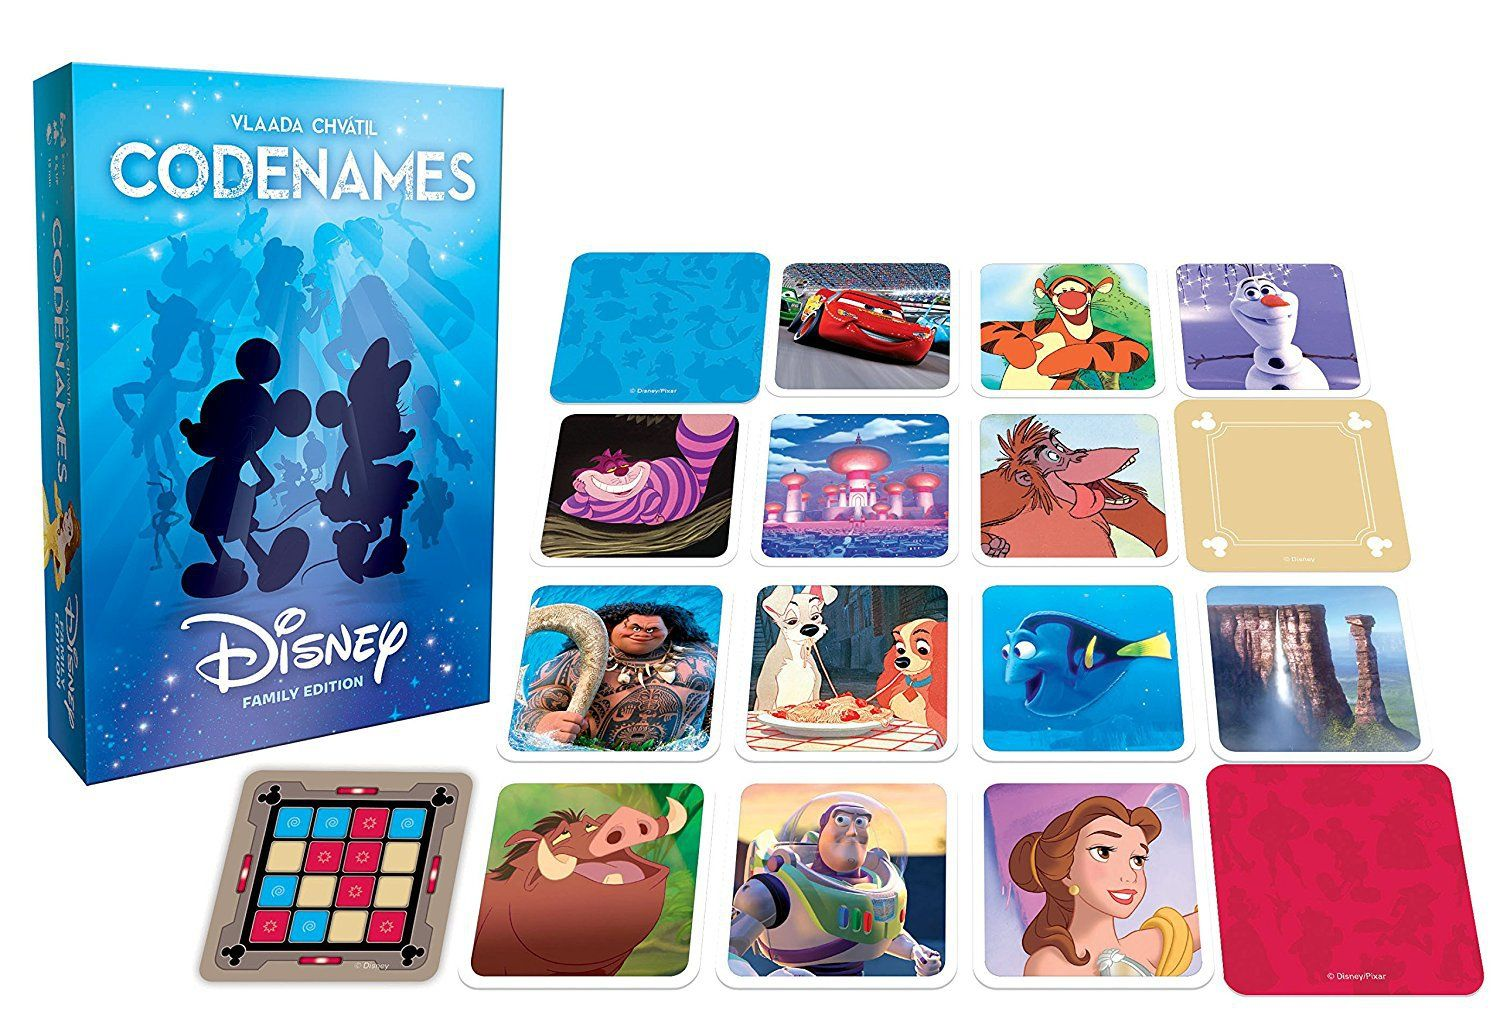 2018 Holiday Gift Guide Family card games, Family games